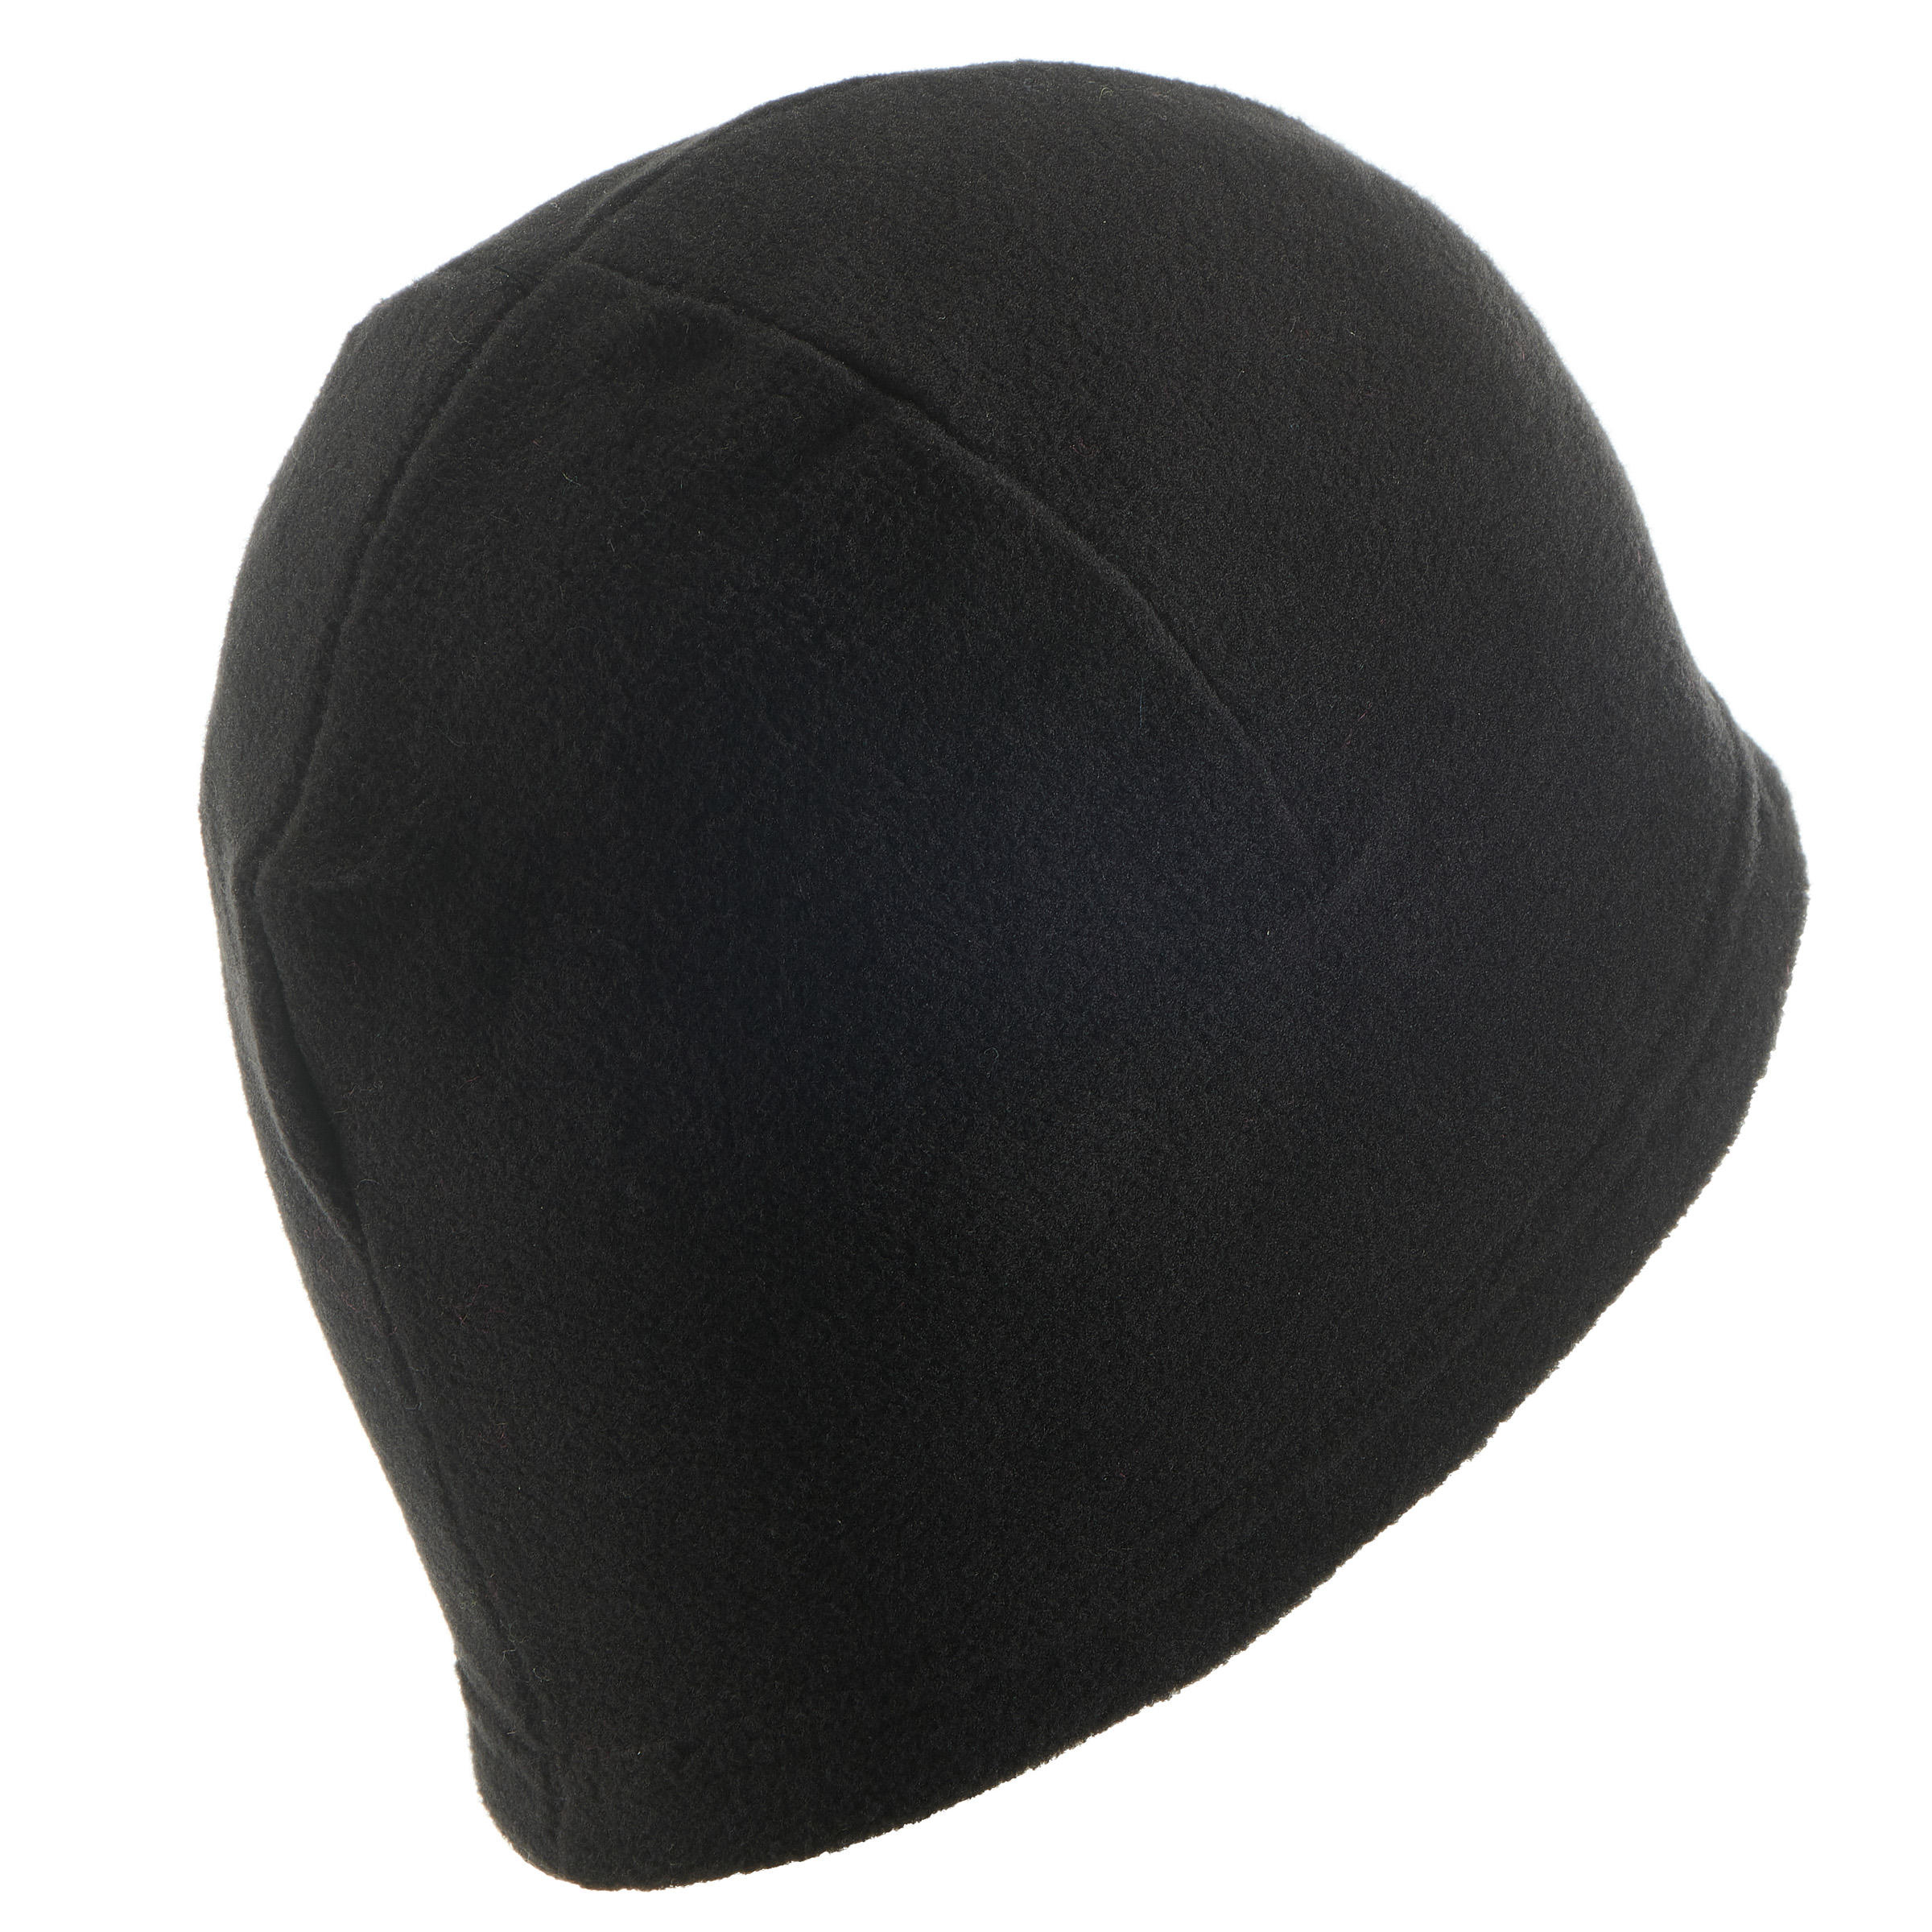 BONNET DE SKI ADULTE FIRSTHEAT NOIR